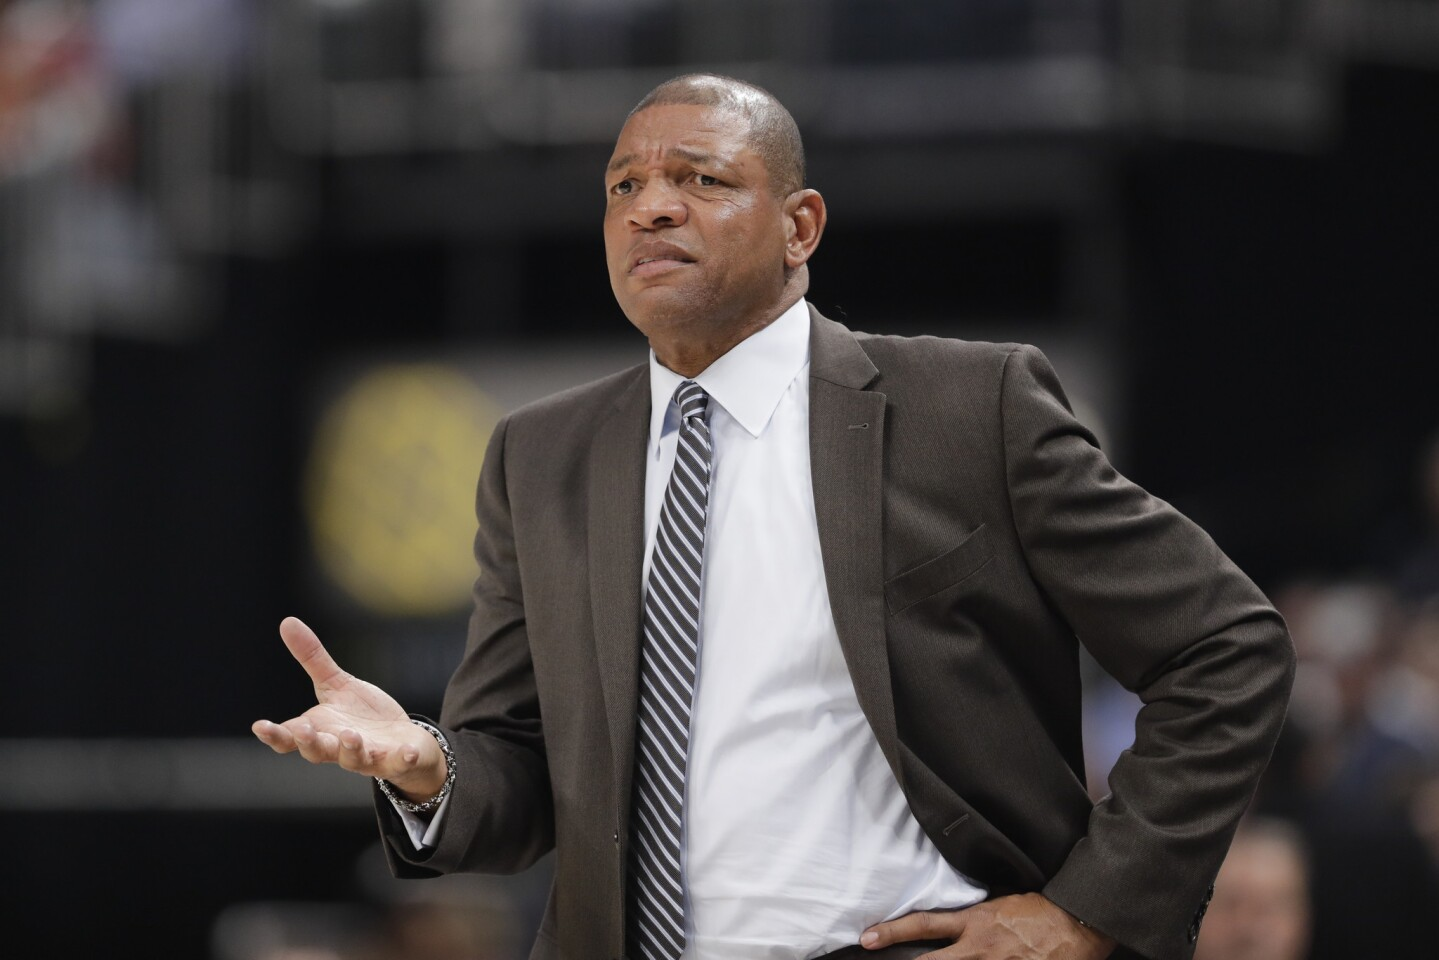 Los Angeles Clippers head coach Doc Rivers calls a play during the second half of an NBA basketball game against the Indiana Pacers, Thursday, Feb. 7, 2019, in Indianapolis. Indiana won 116-92. (AP Photo/Darron Cummings)